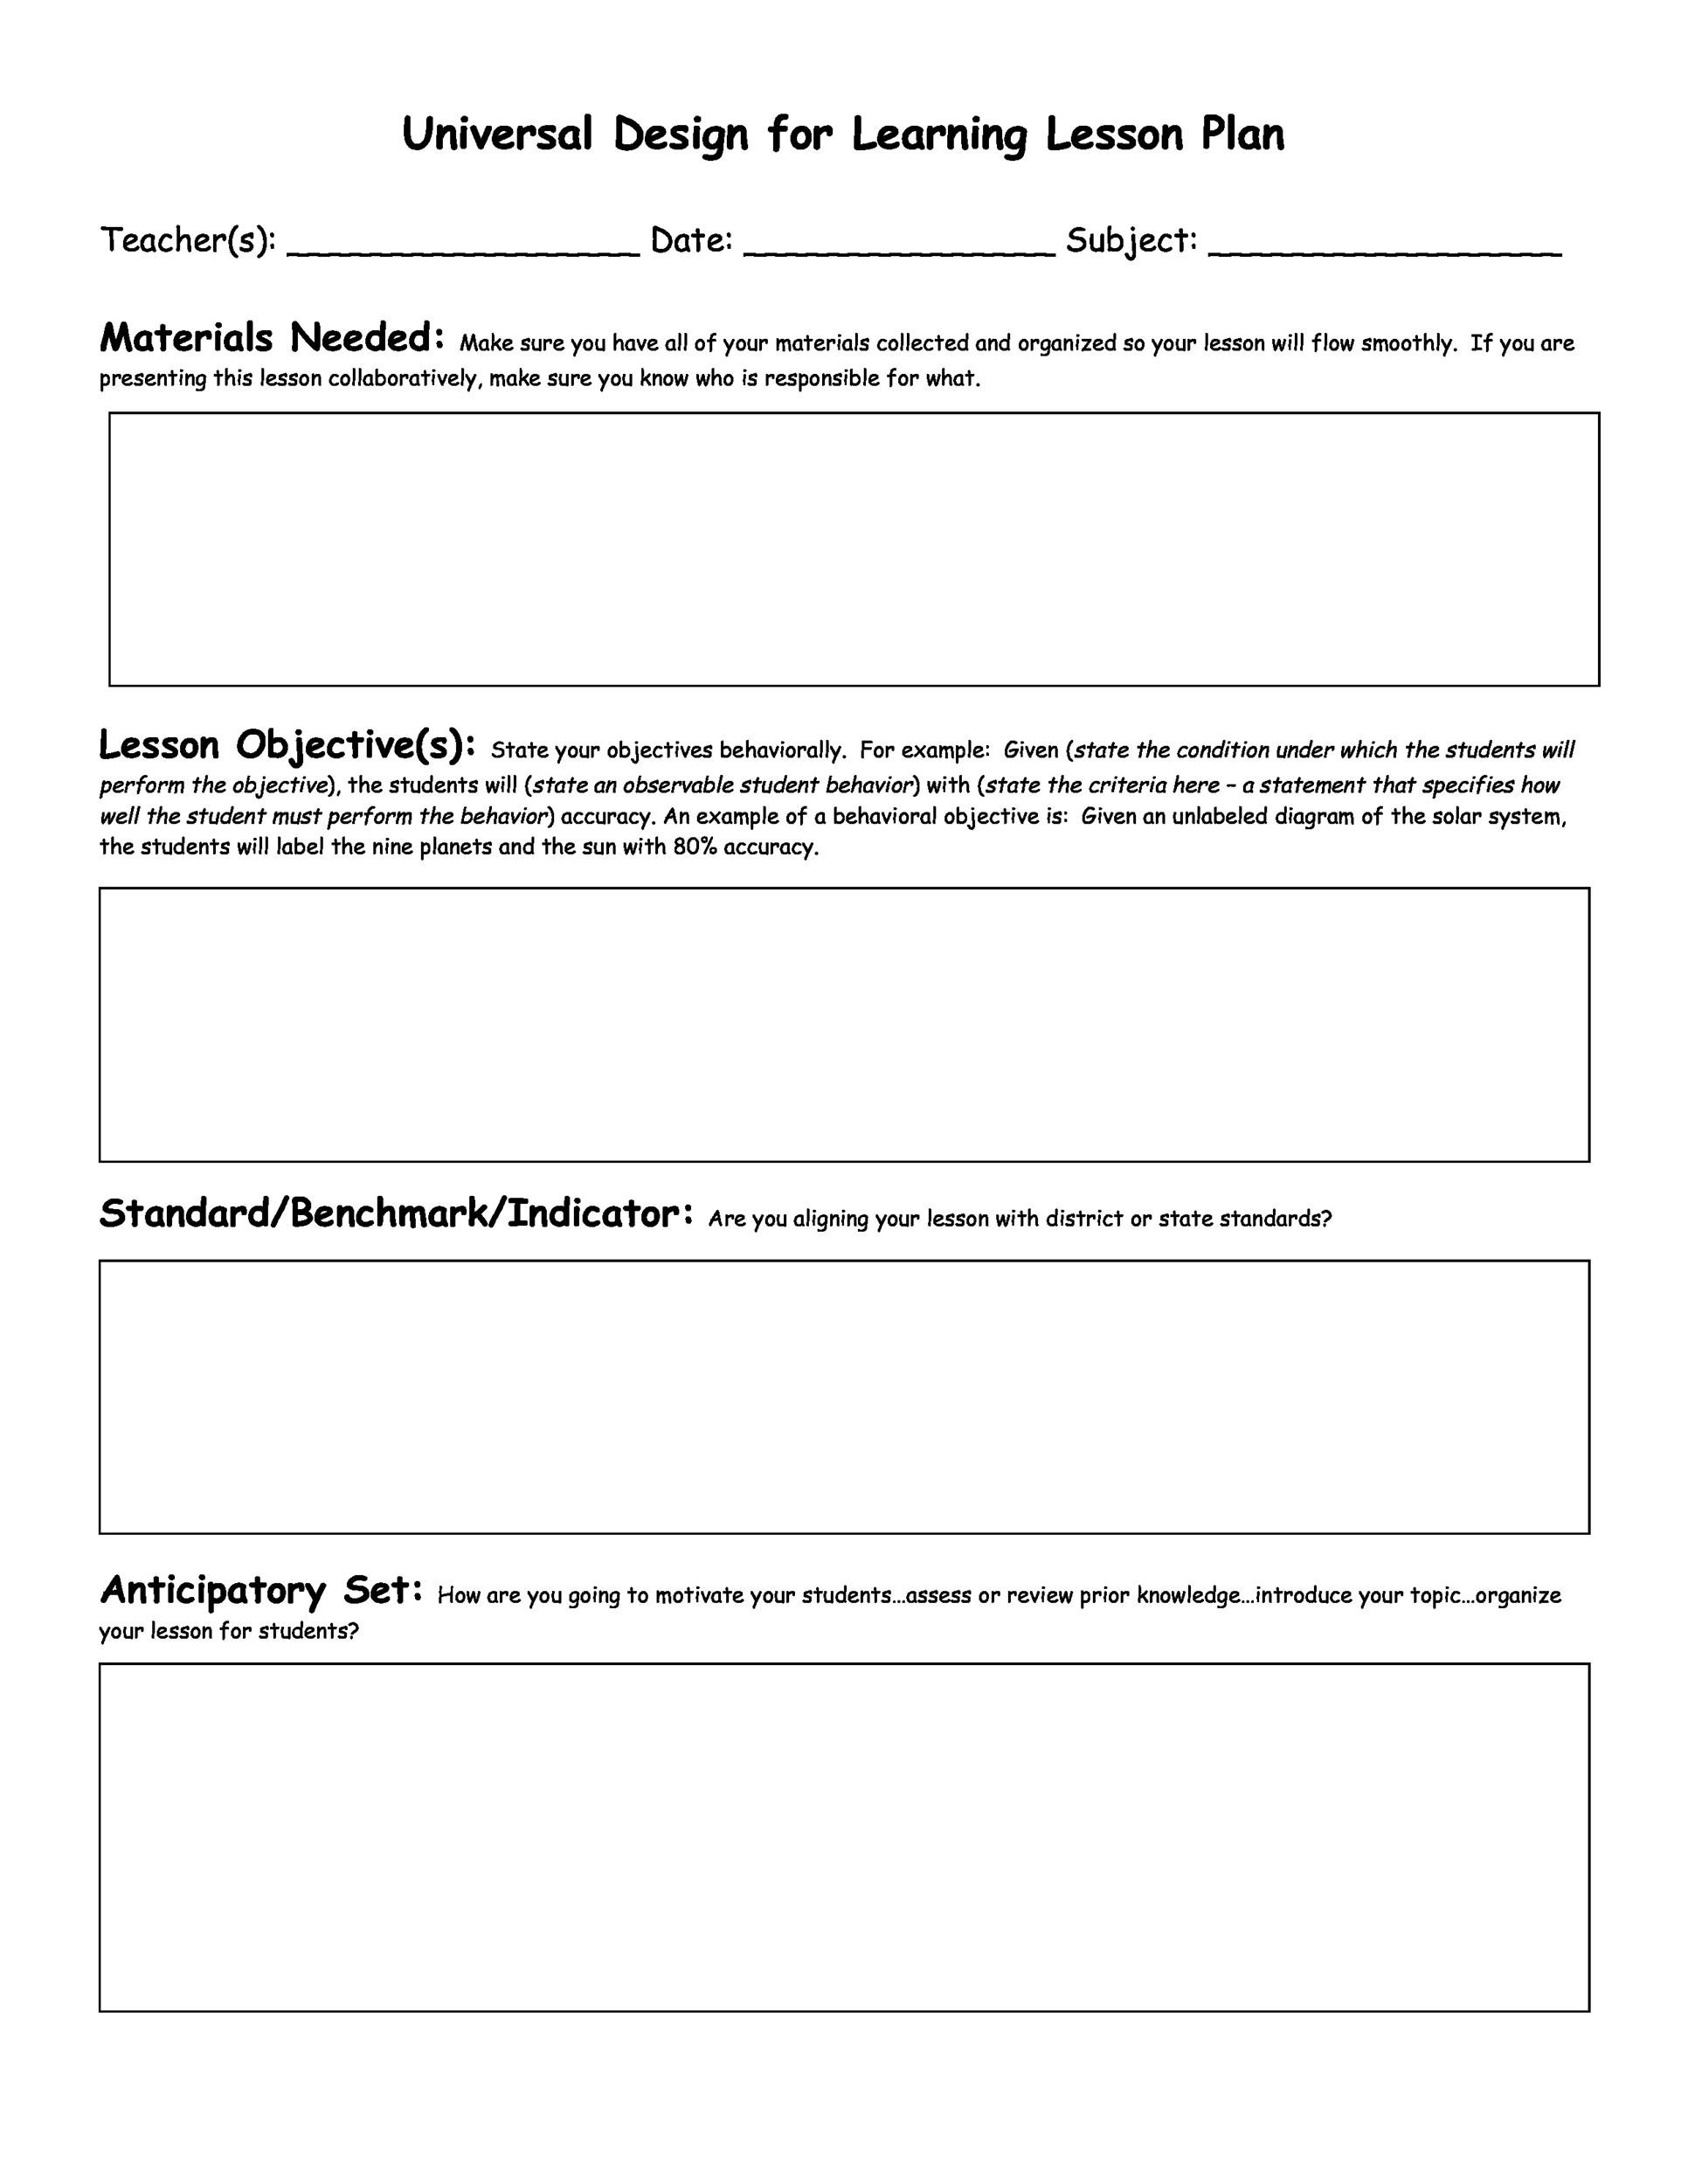 FREE Lesson Plan Templates Common Core Preschool Weekly - Word lesson plan template